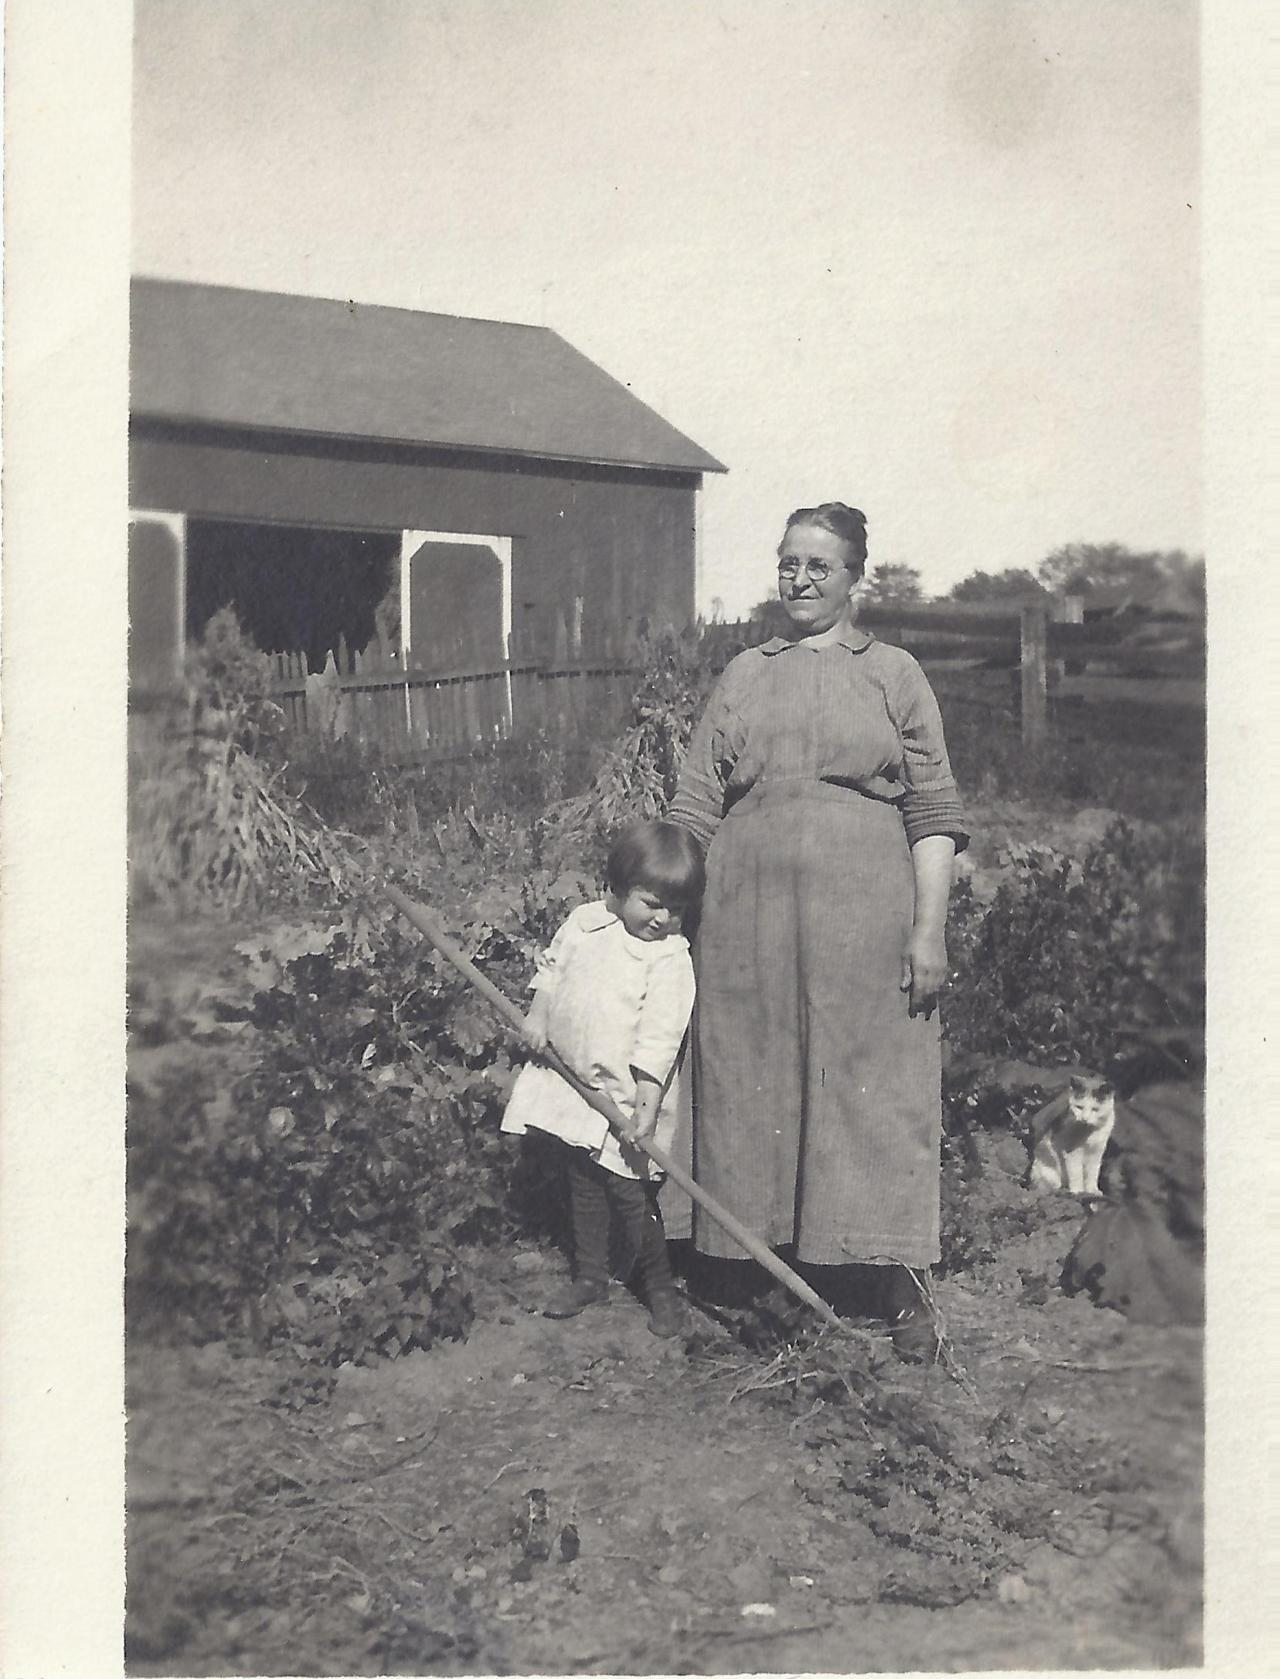 My grandma Eva and her grandma, Mary Bromley in front of the red barn that burned down, at Shady Nook. Mercer, Pennsylvania. 1919.